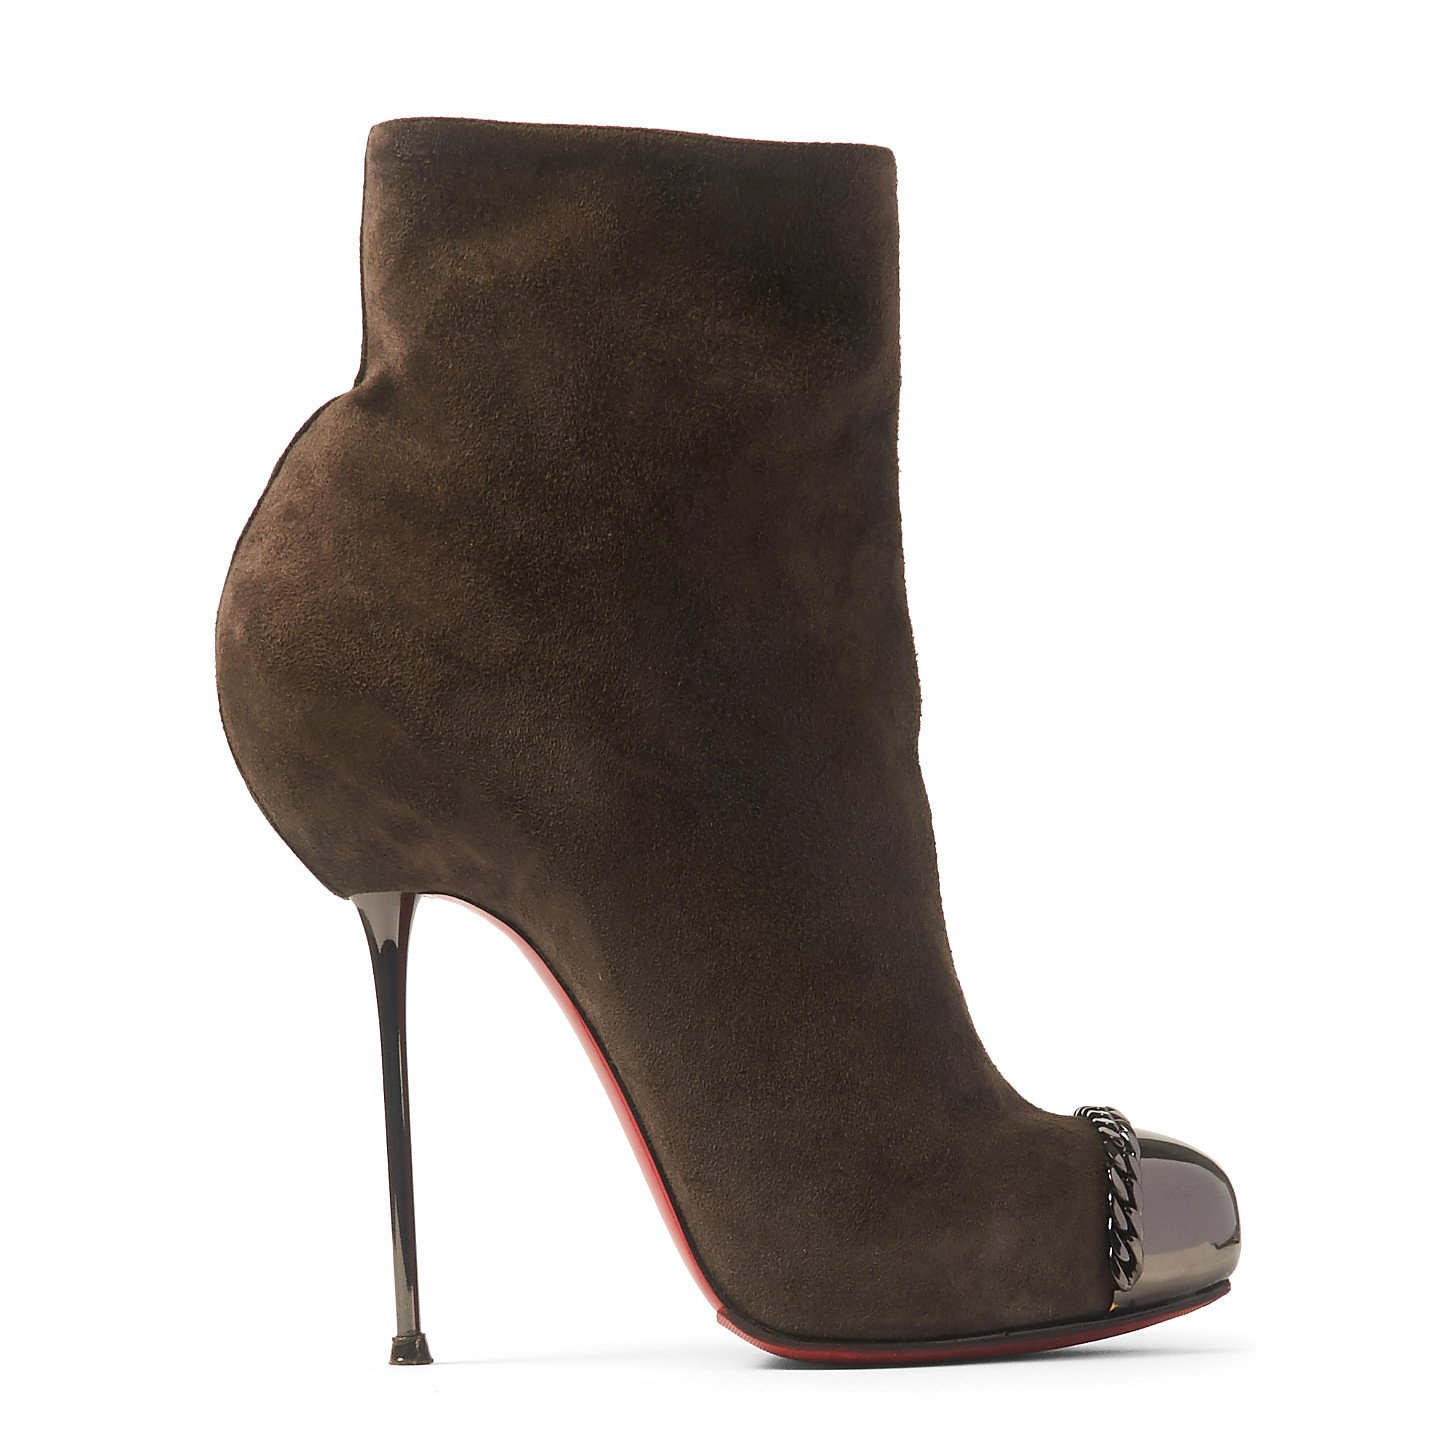 Christian Louboutin Suede Stiletto Ankle Boots